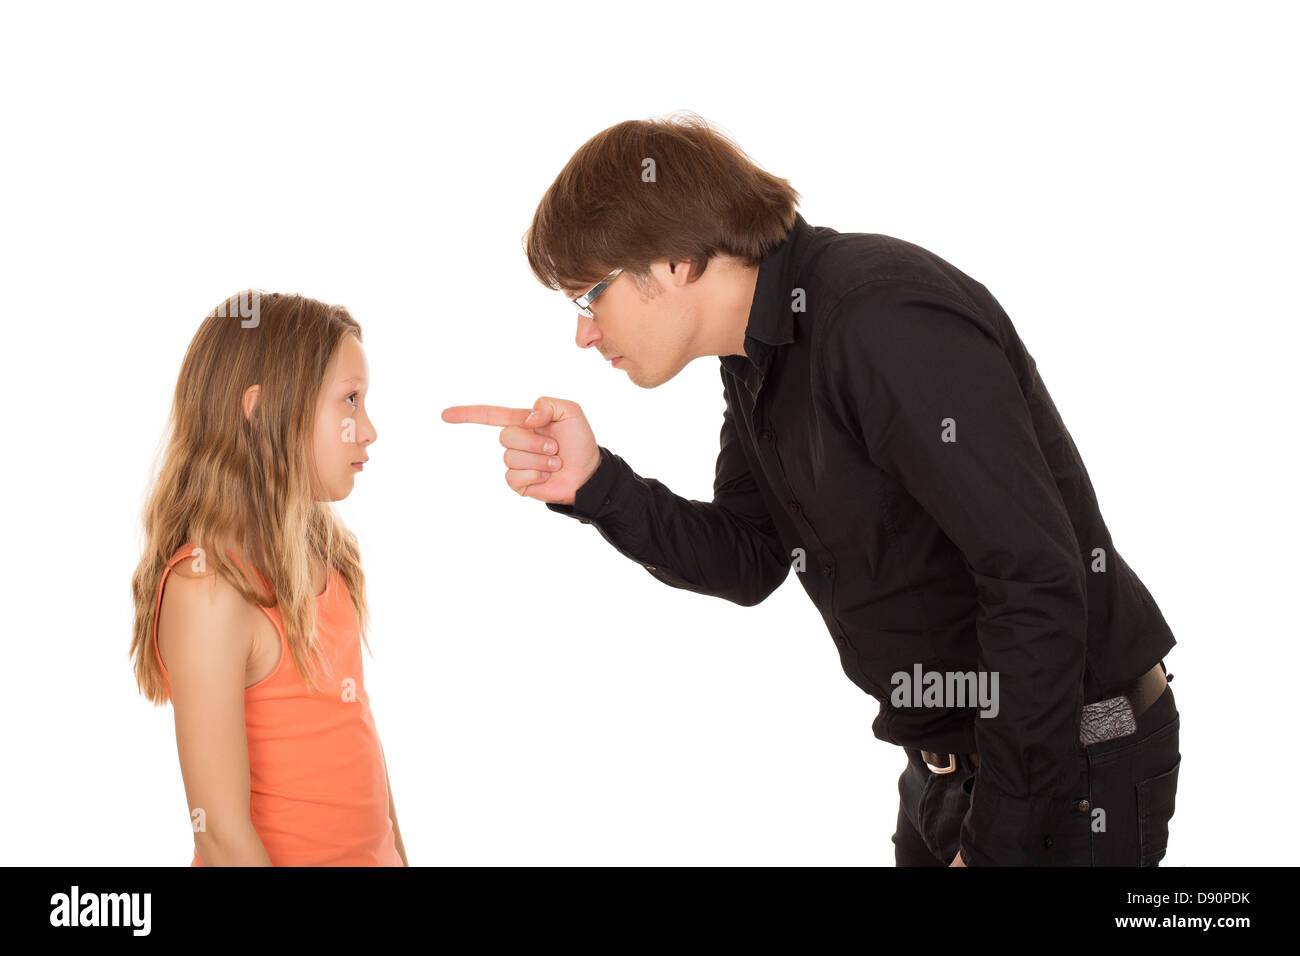 Angry father pointing the finger and explains what's wrong to her daughter. Isolated on white background. - Stock Image